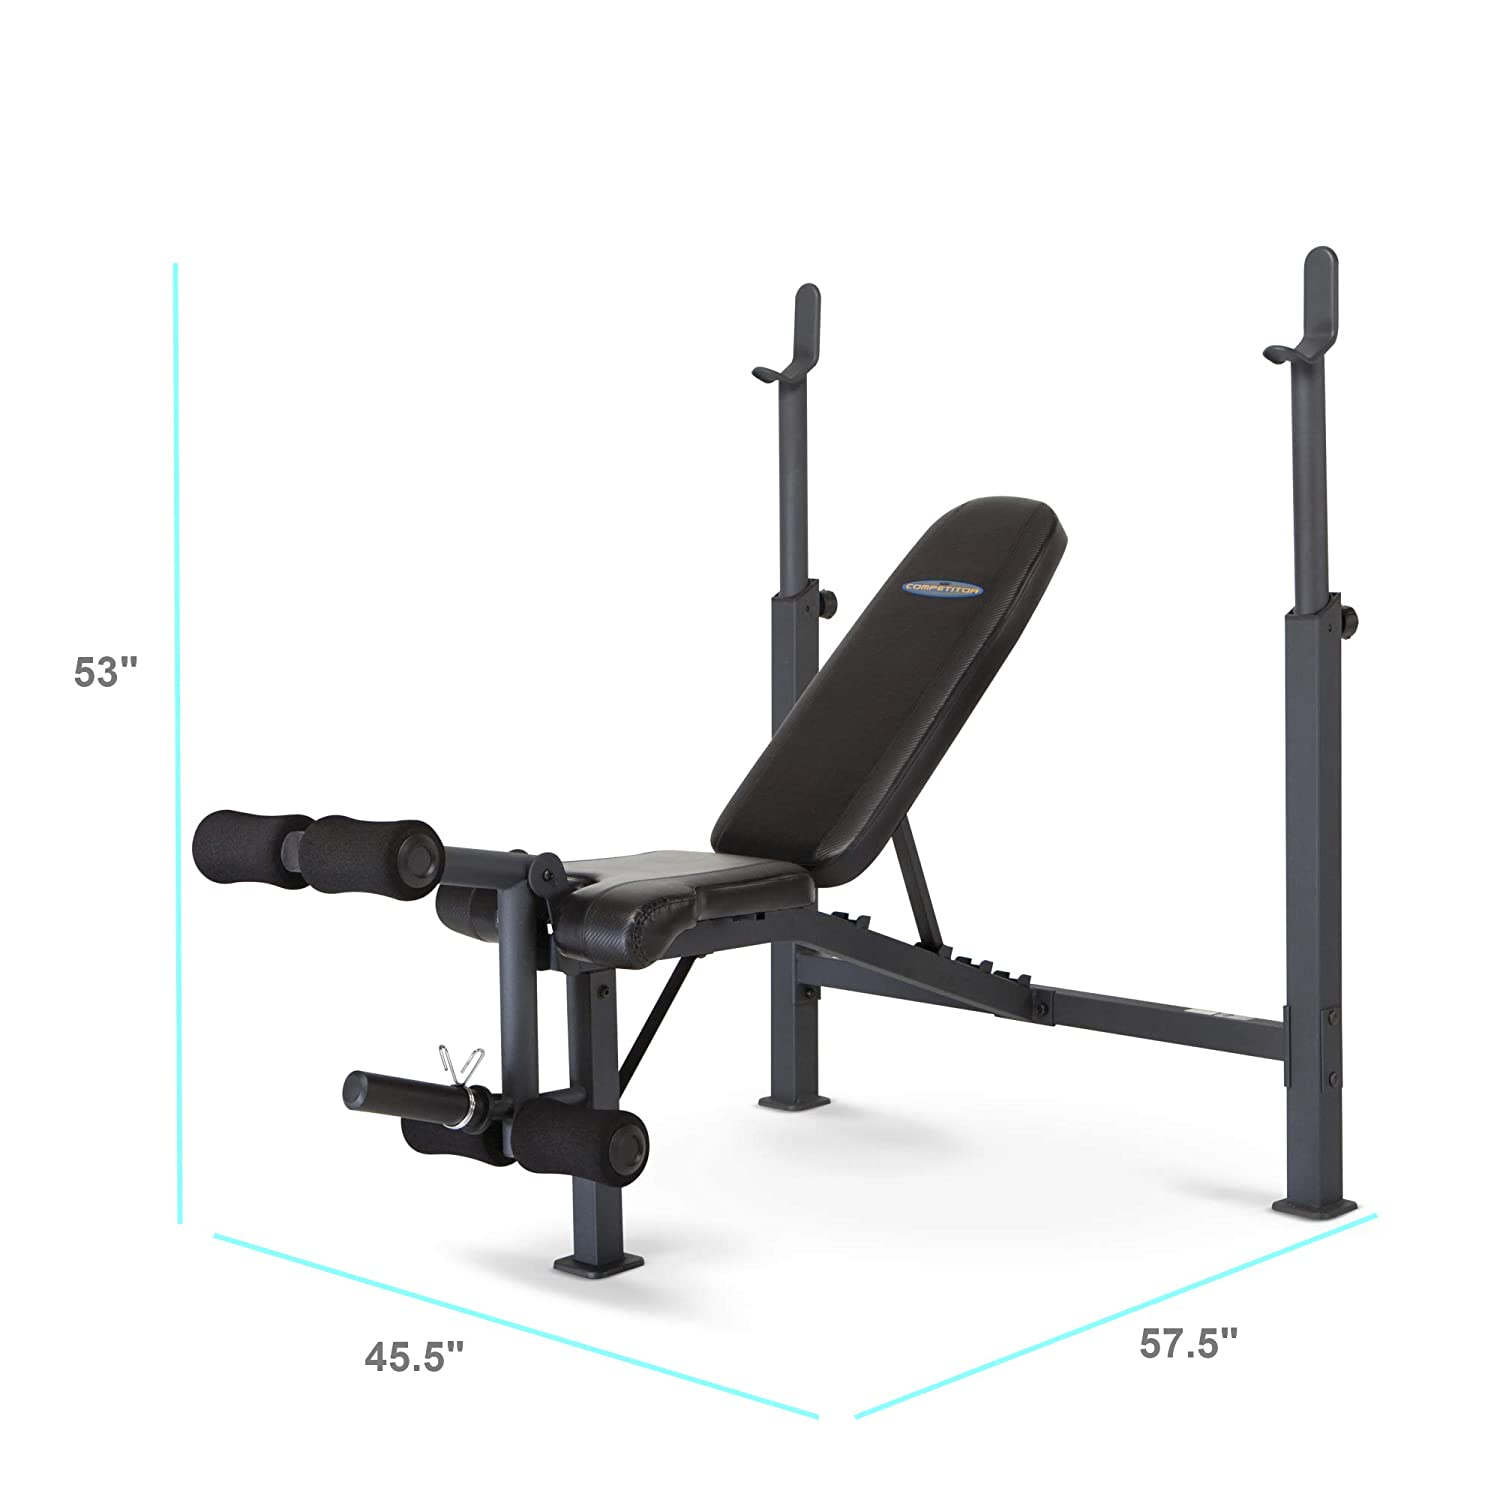 Amazon.com : Marcy Competitor Adjustable Olympic Weight Bench with Leg  Developer for Weight Lifting and Strength Training CB-729 : Sports &  Outdoors